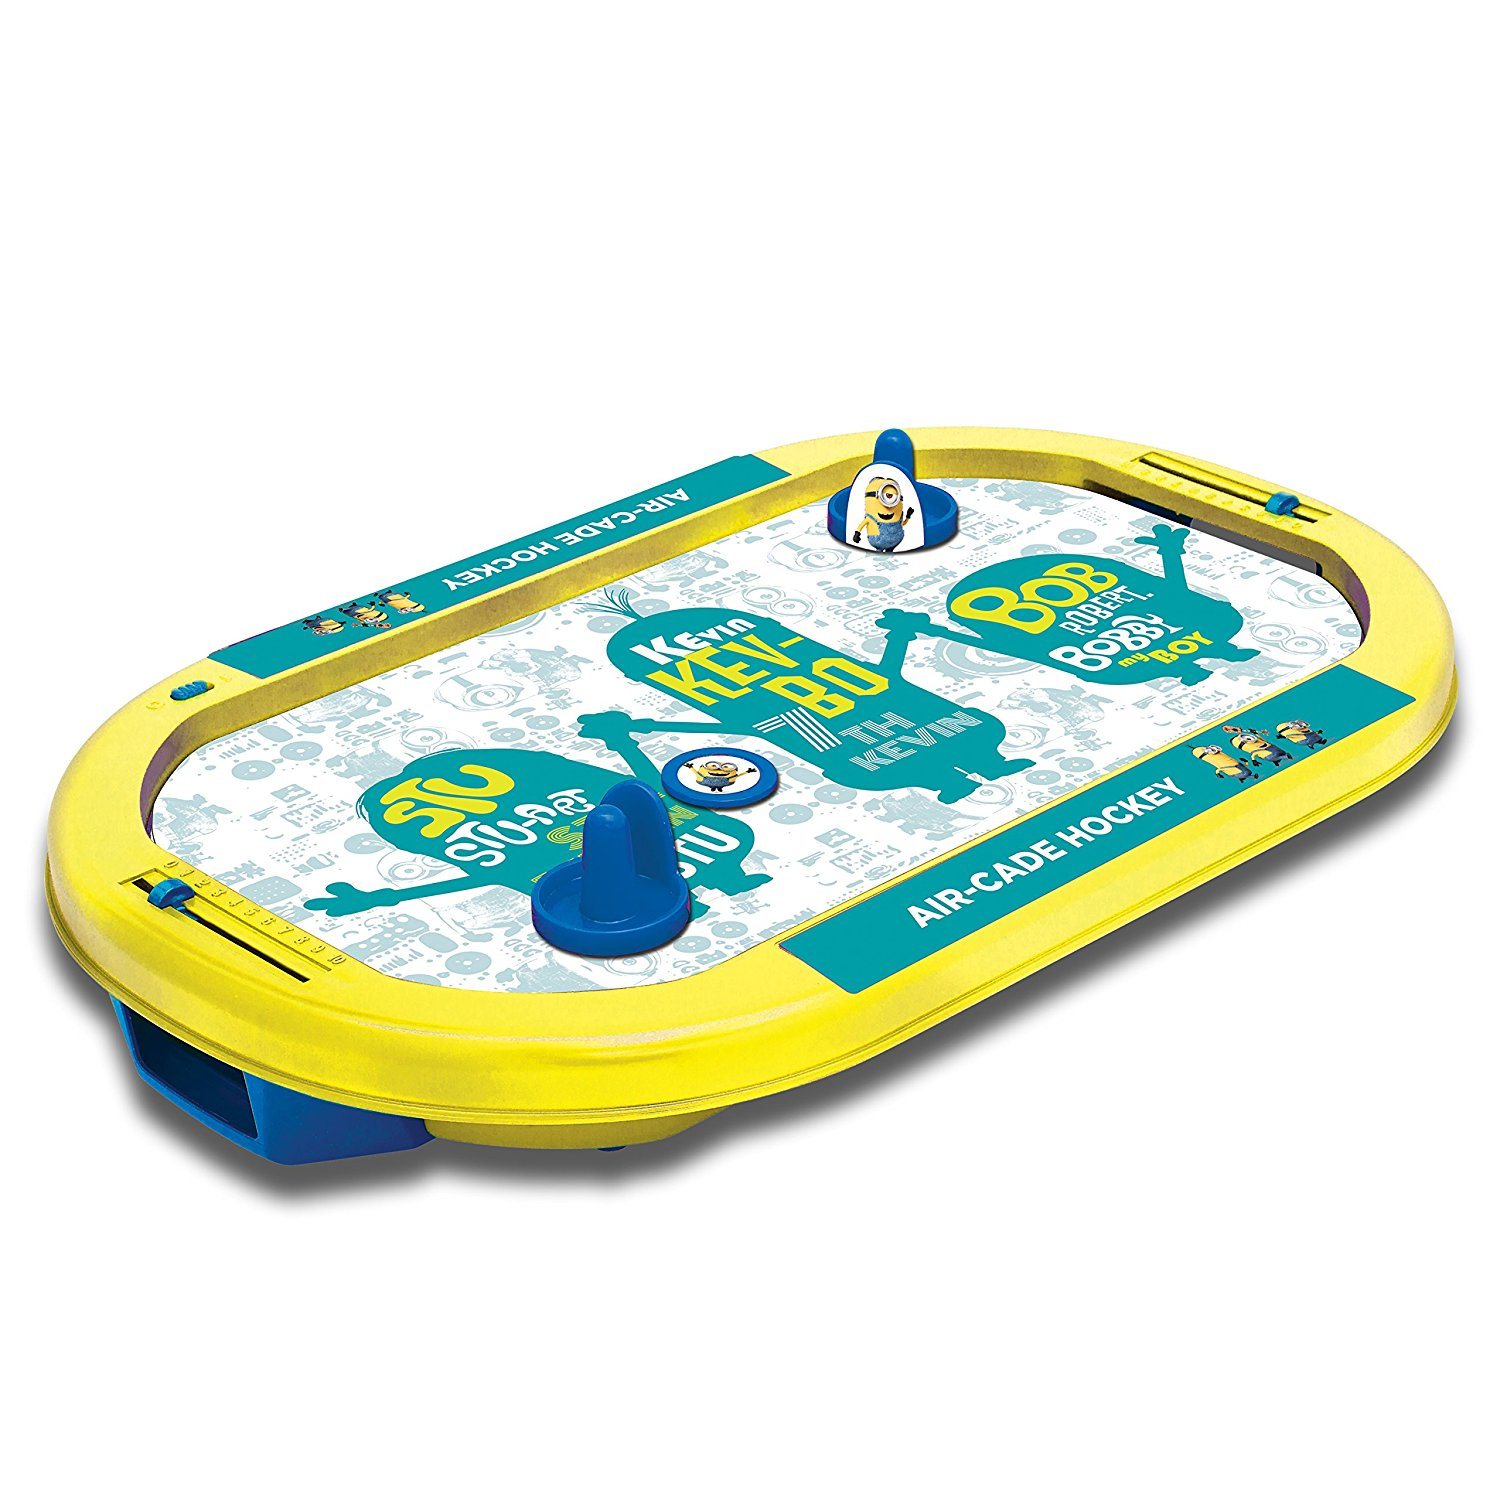 Air-Cade Hockey Game, �Electronic air flow system allows the puck to float on a cushion of air By Minions by